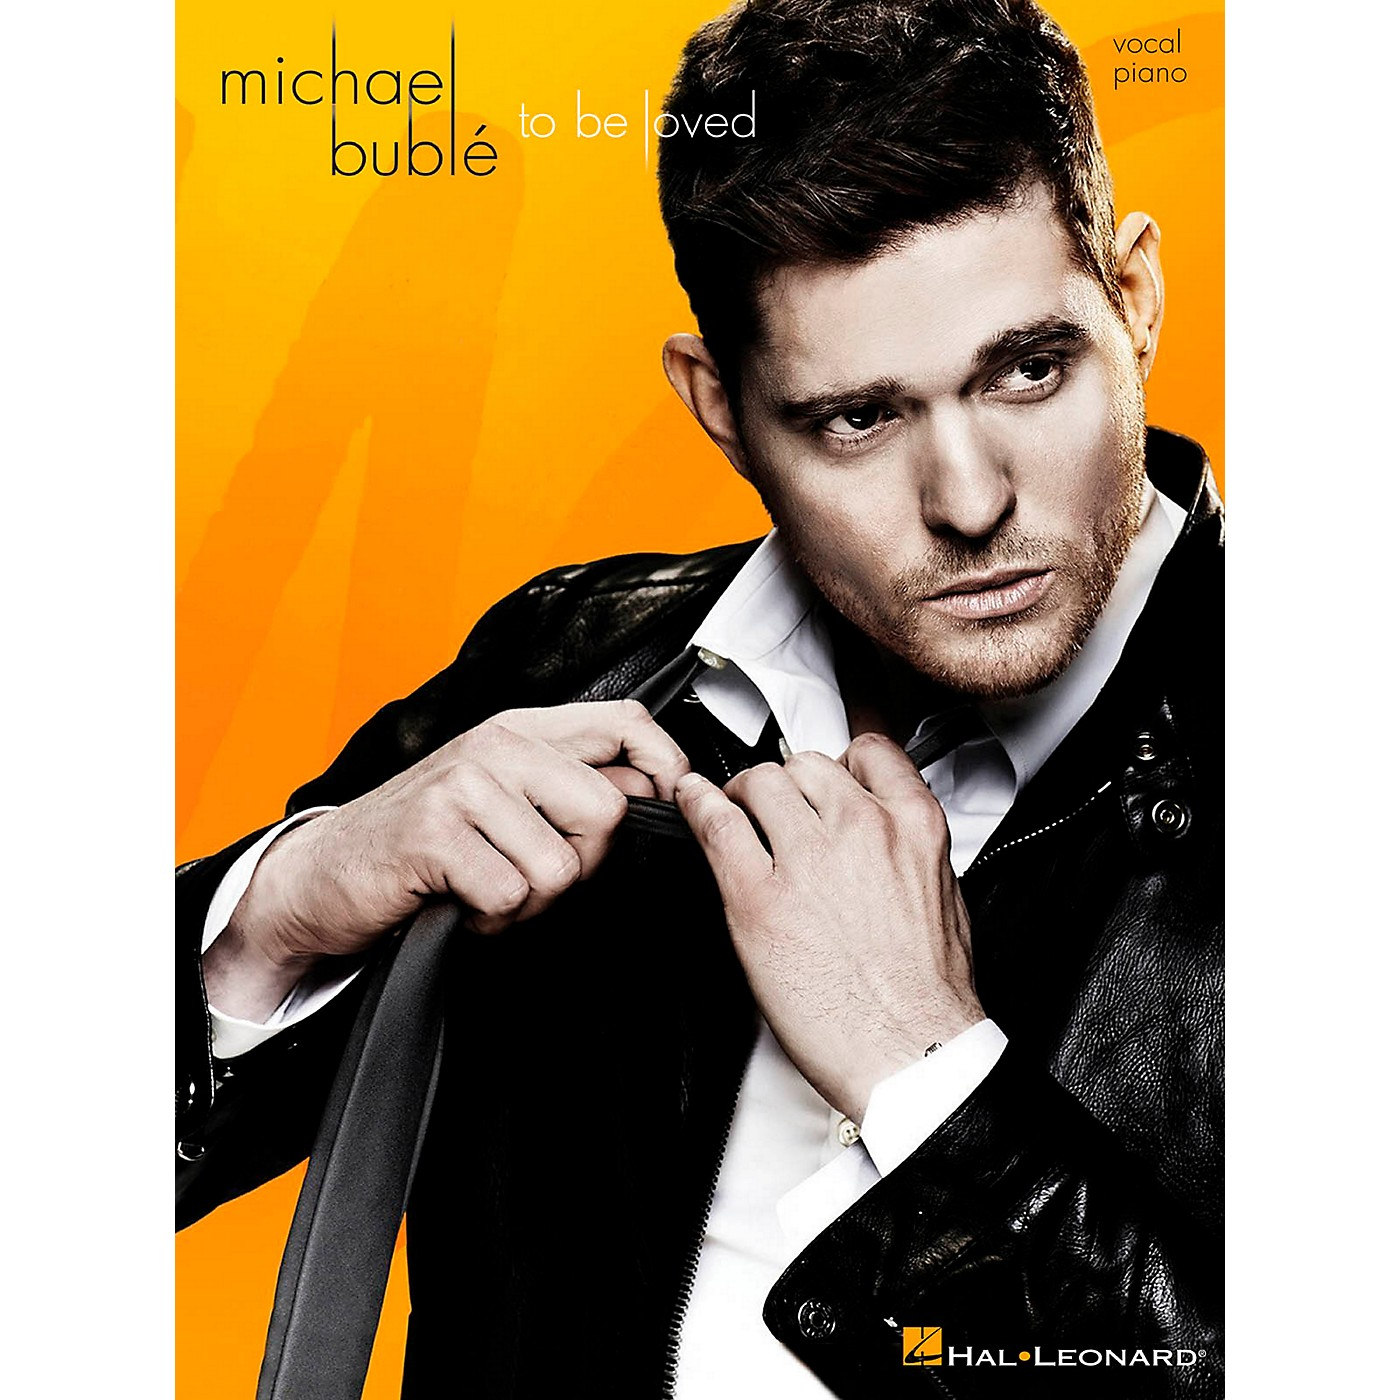 Hal Leonard Michael Buble - To Be Loved for Vocal/Piano thumbnail